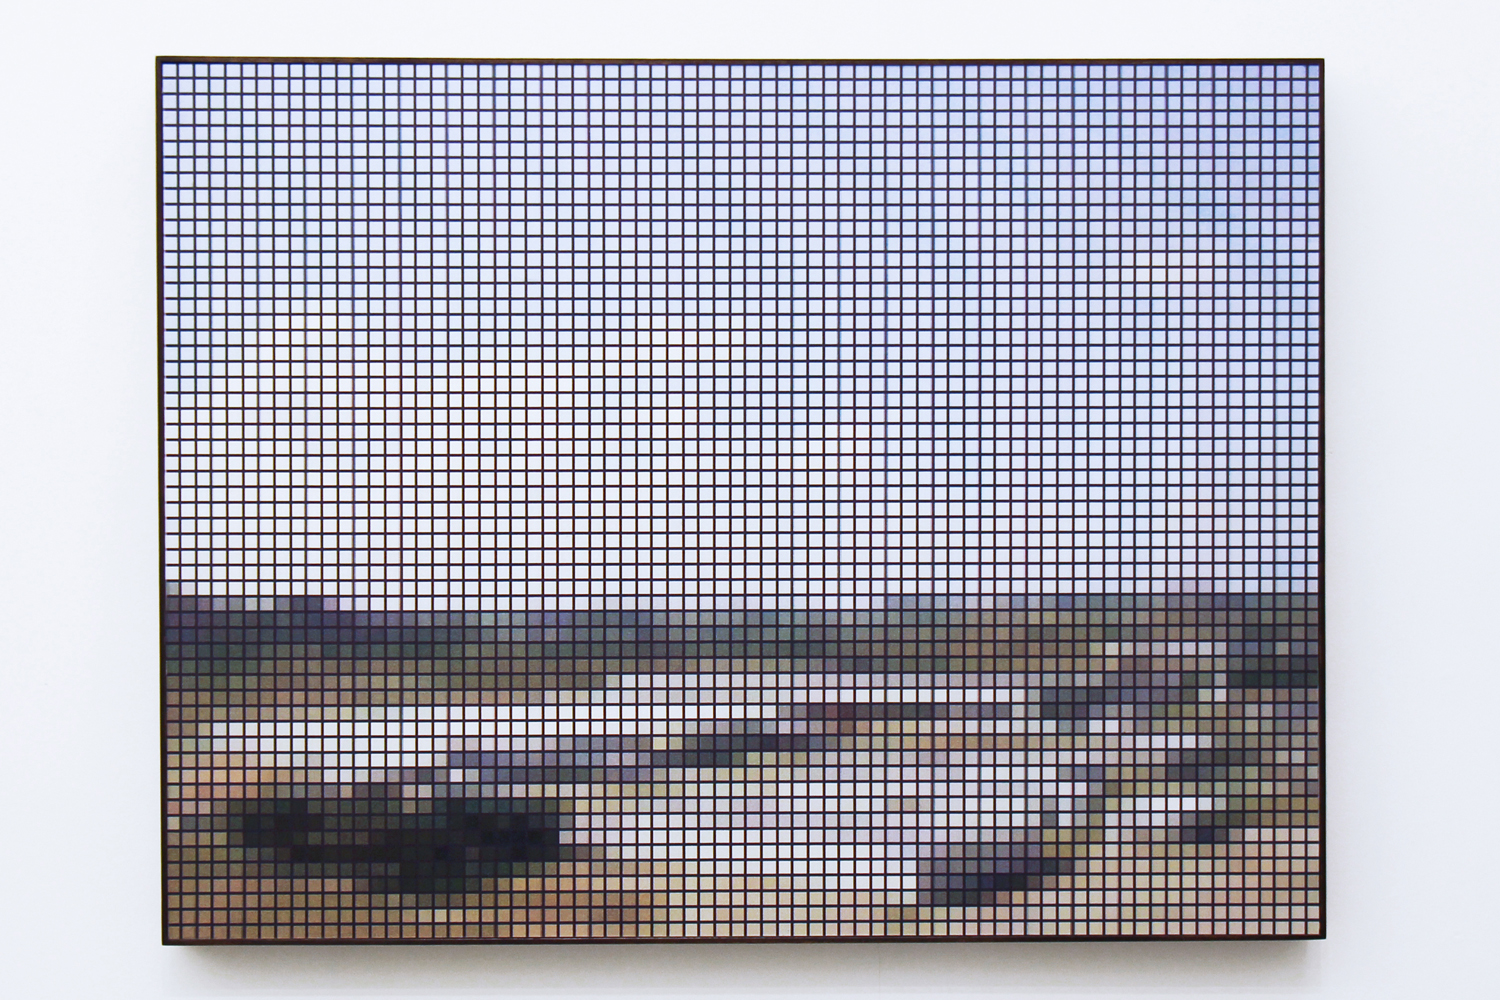 Ipojuca (After Post) • 2010 •  Photograph, lenticular p rint • 29.9 x 39.3 in